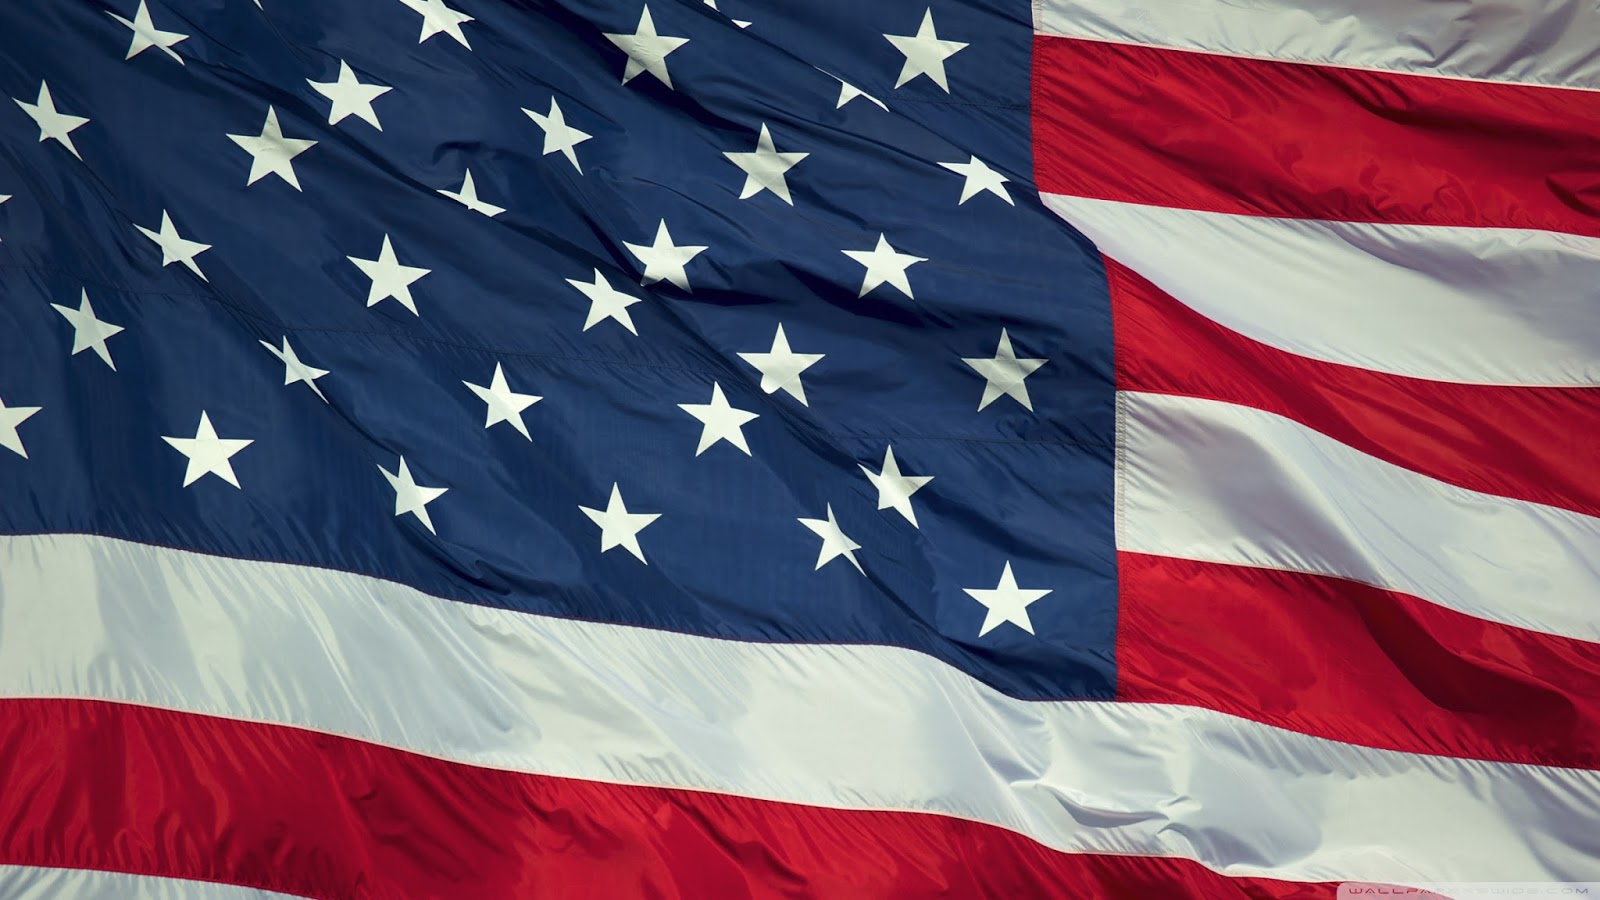 american_flag-wallpaper-2400x1350